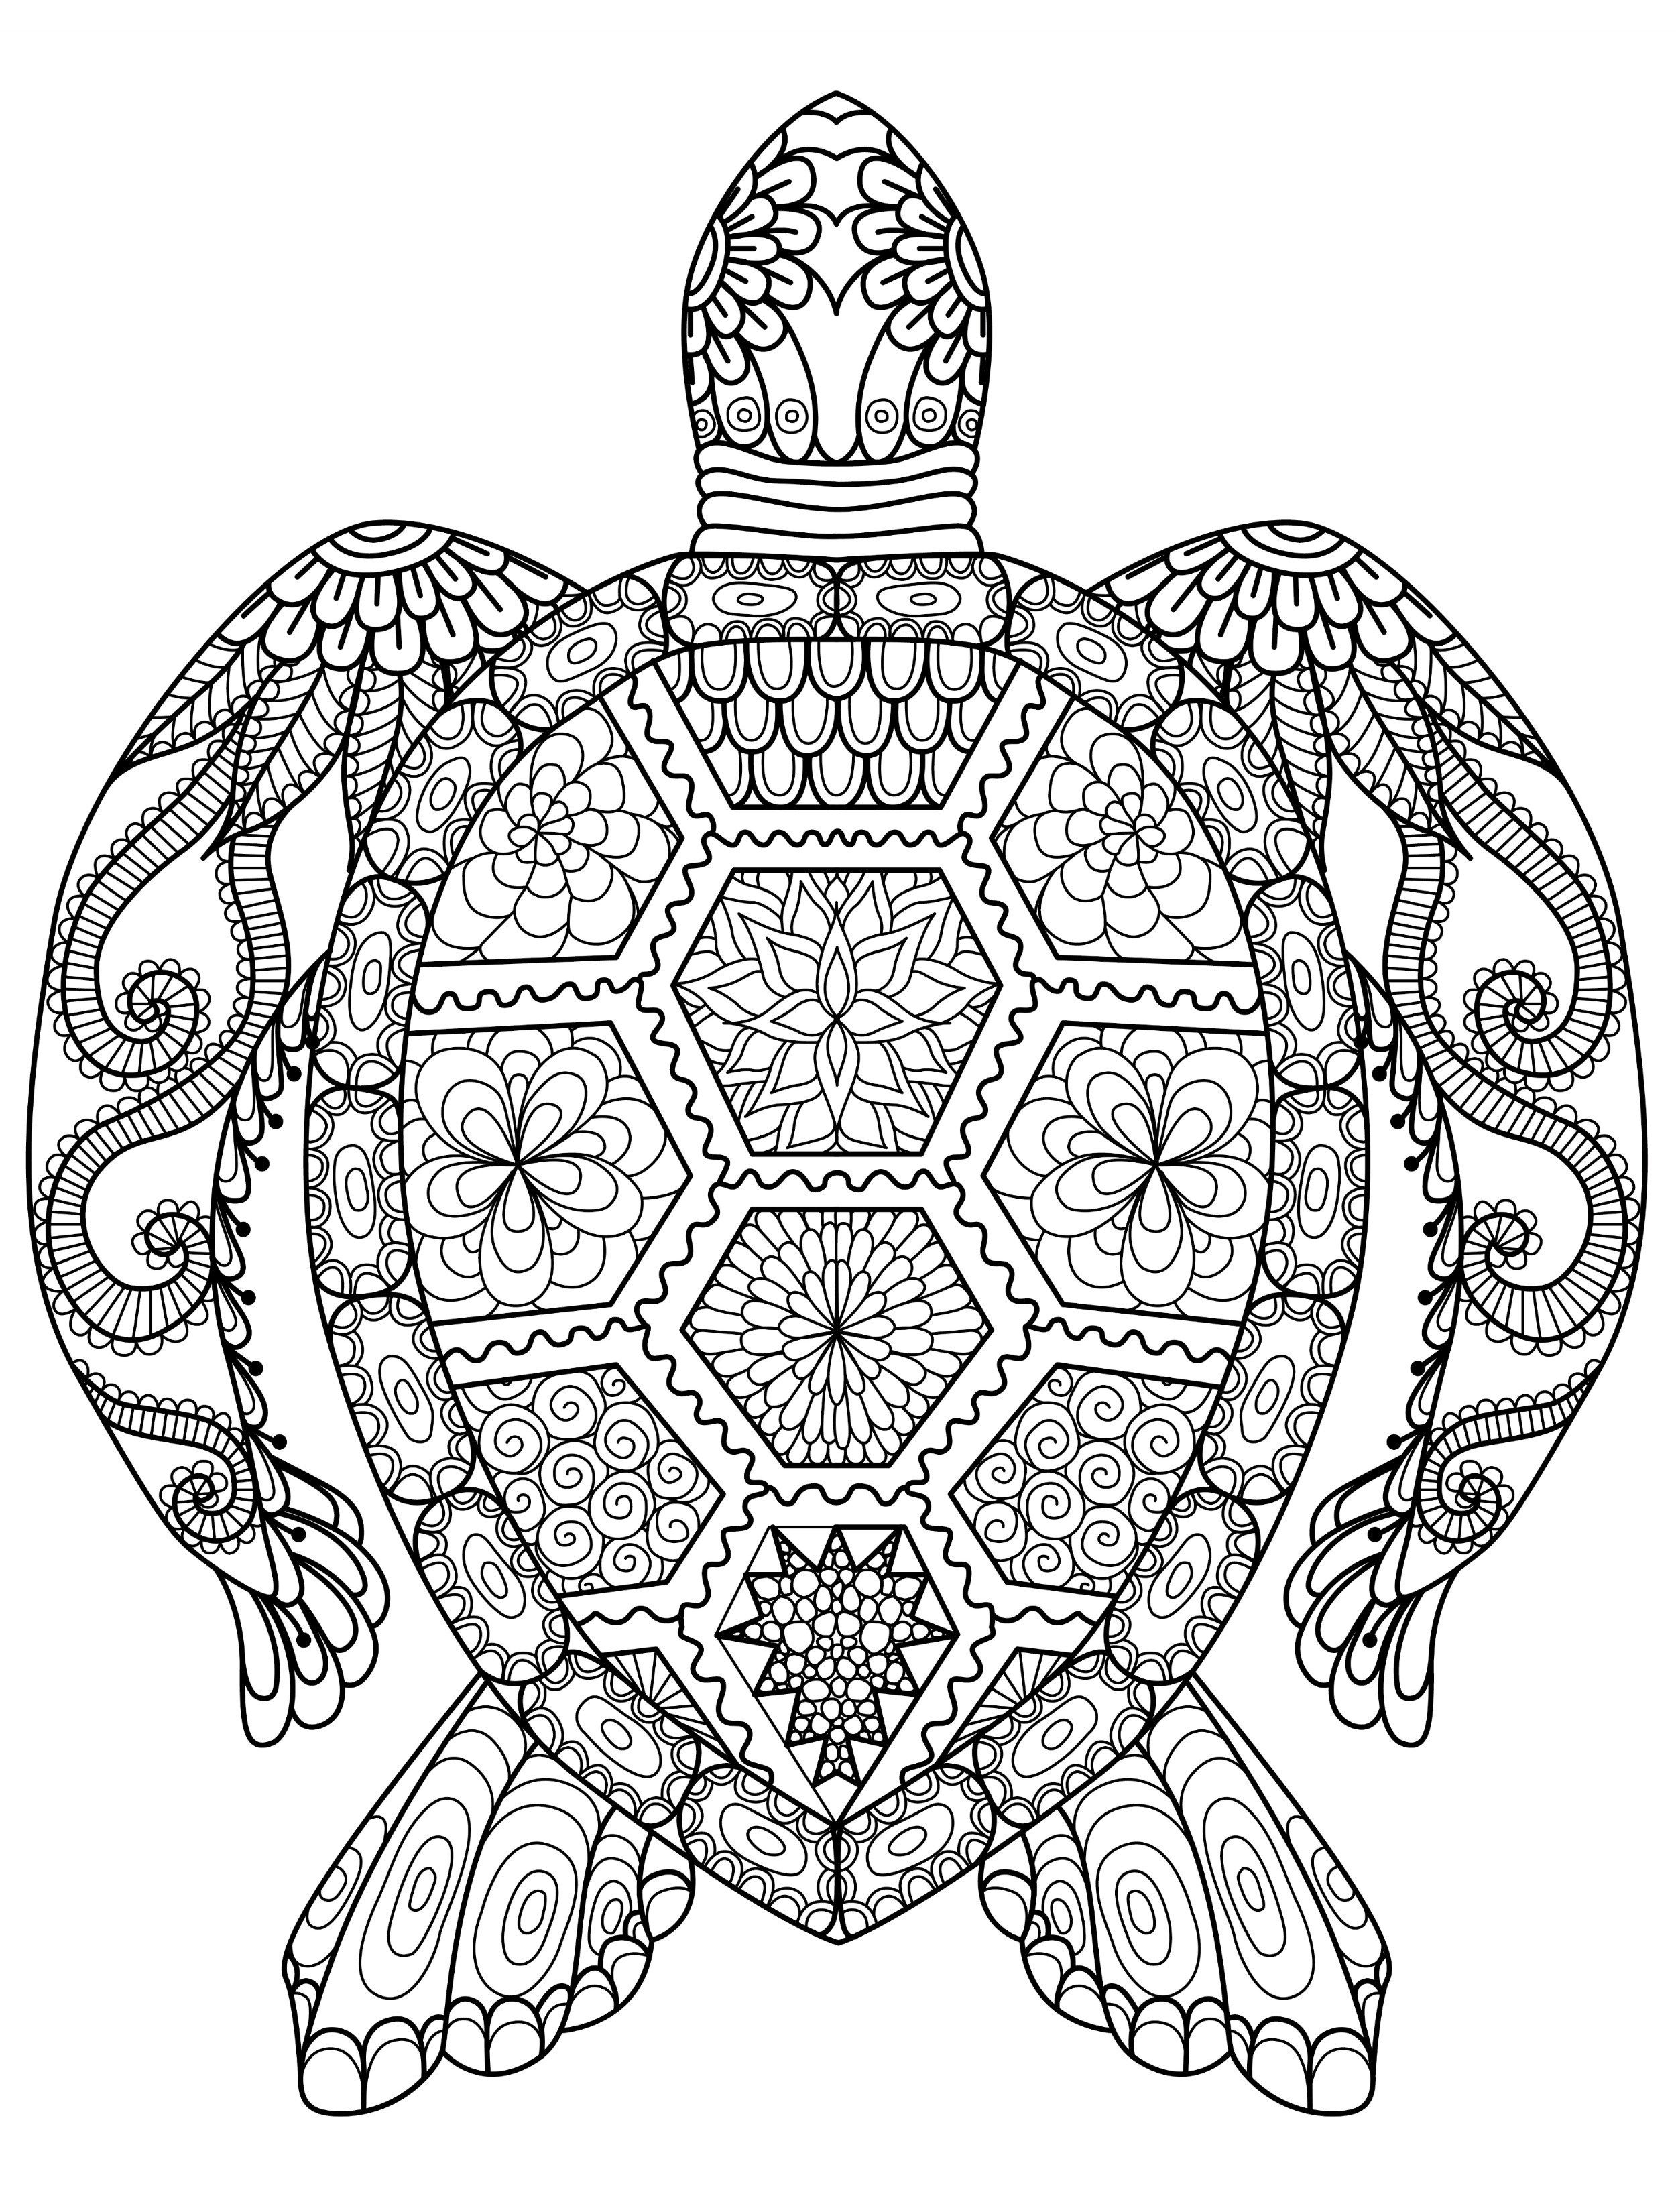 free mandala coloring pages for adults 20 gorgeous free printable adult coloring pages turtle coloring adults for mandala pages free